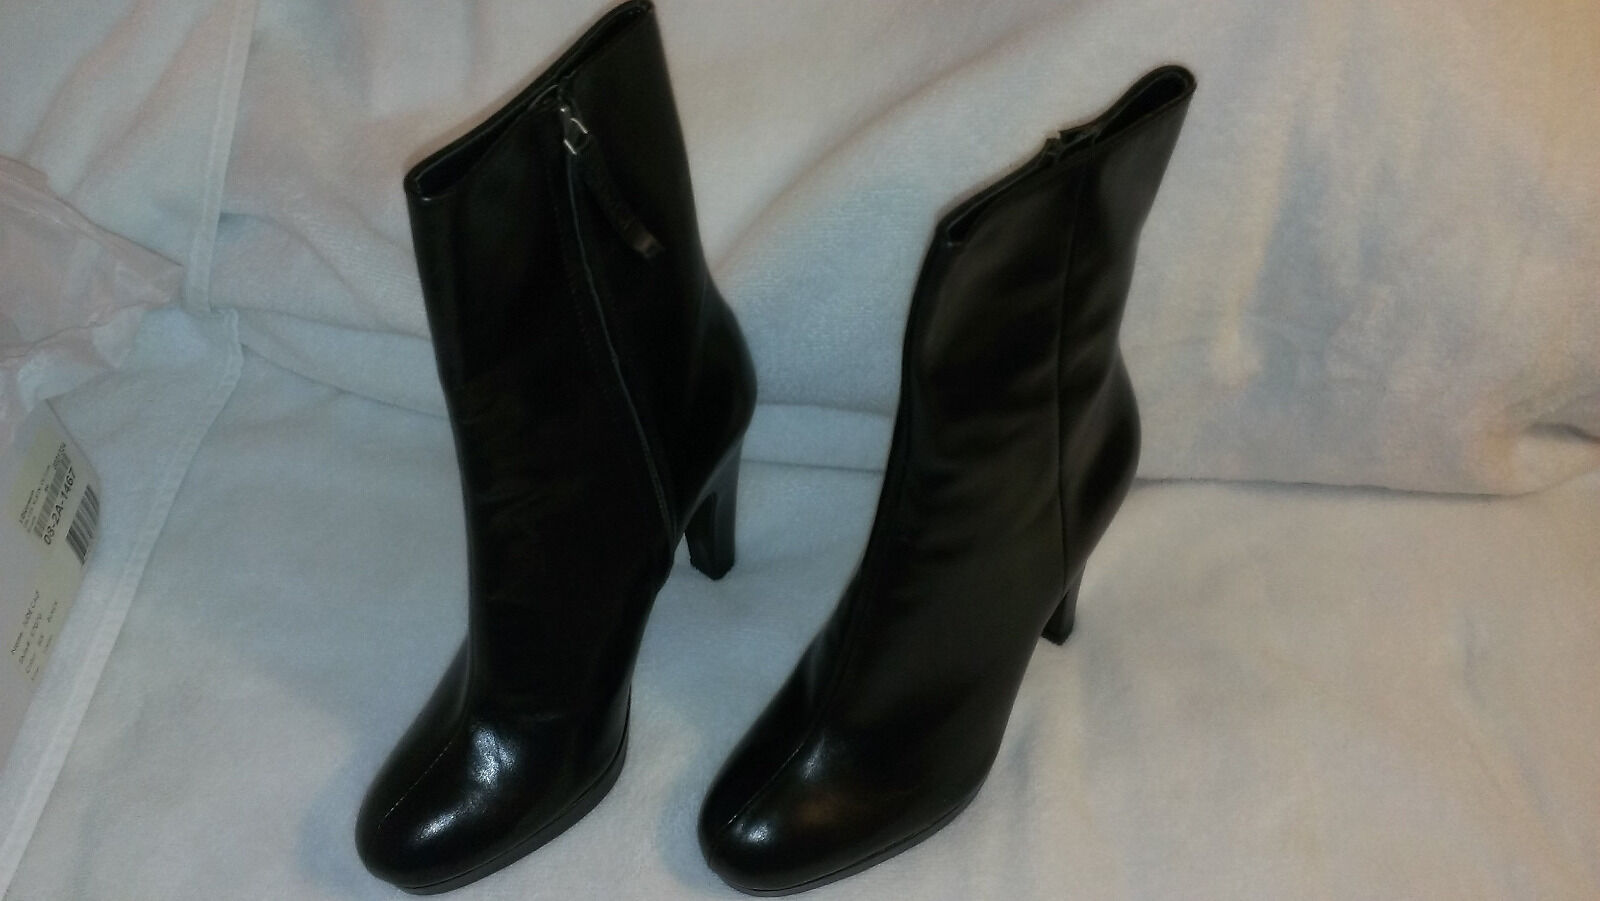 NEW Womens Calvin Klein CK Jude Calf Black Leather Mid- High Heel Boots 10M NIB